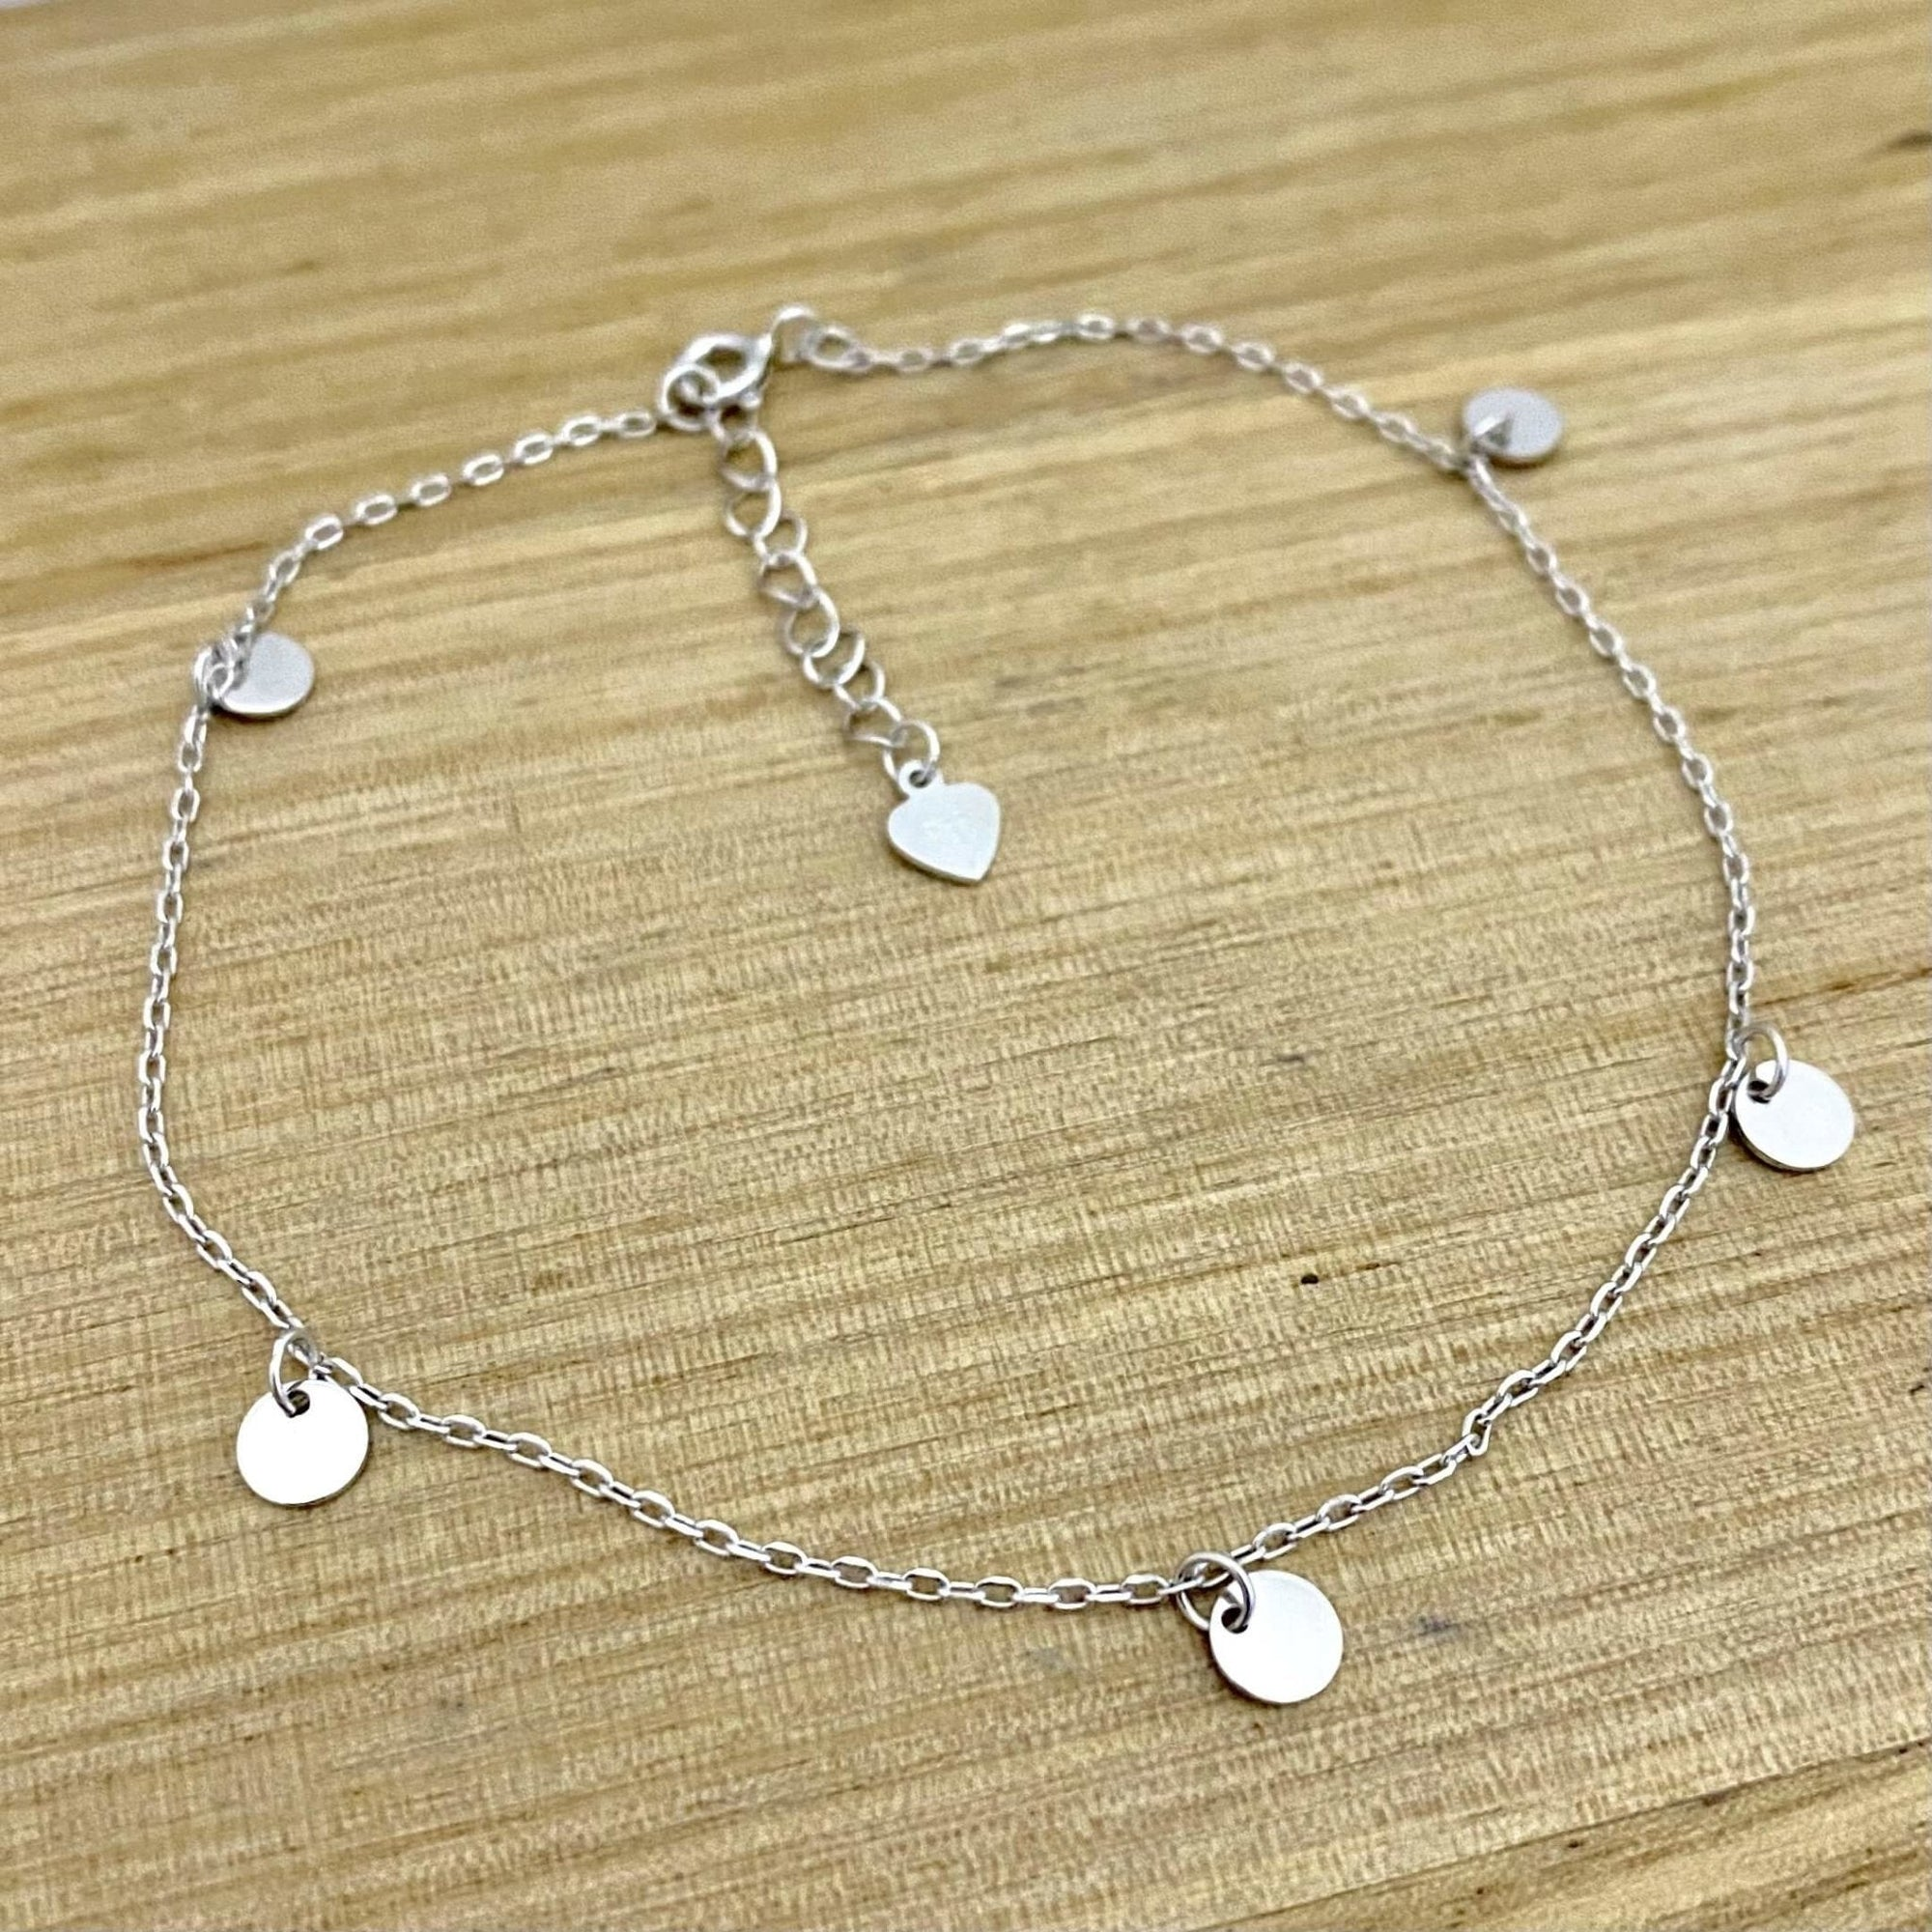 Laihas Bohemian Disk Rhodium Plated Sterling Silver Anklet - Laihas Bohemian Dreaming